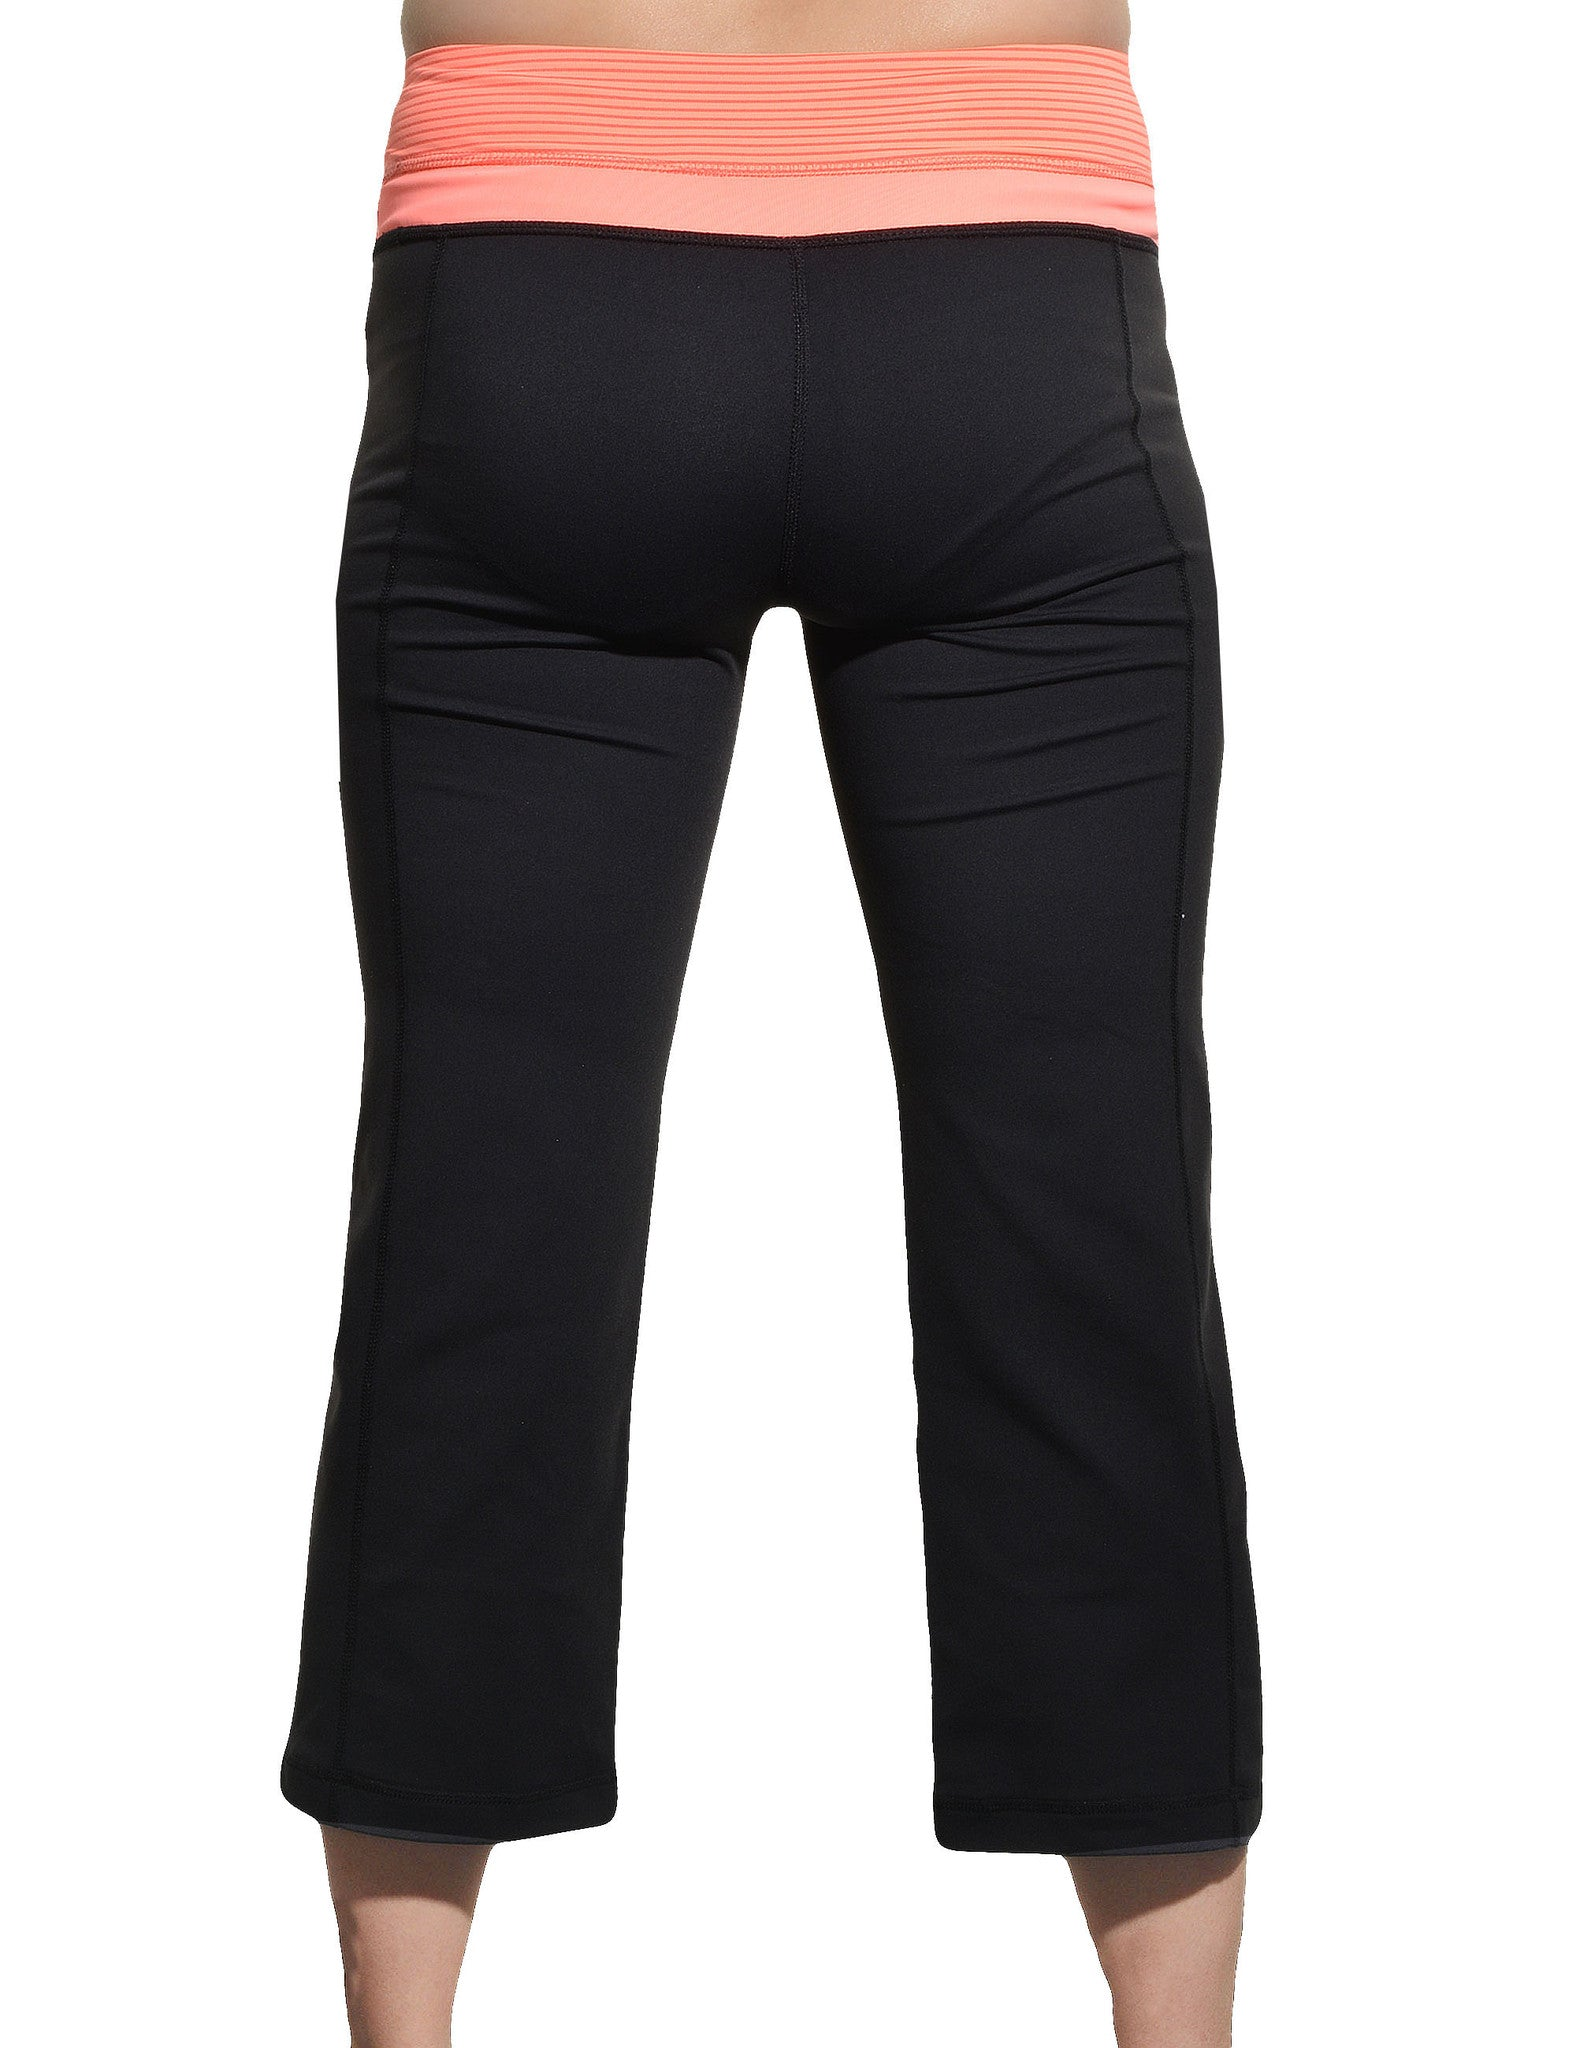 Capri Reversible Yoga Workout Pants (Black Orange),Pants,Kirkland Signature - Discount Divas